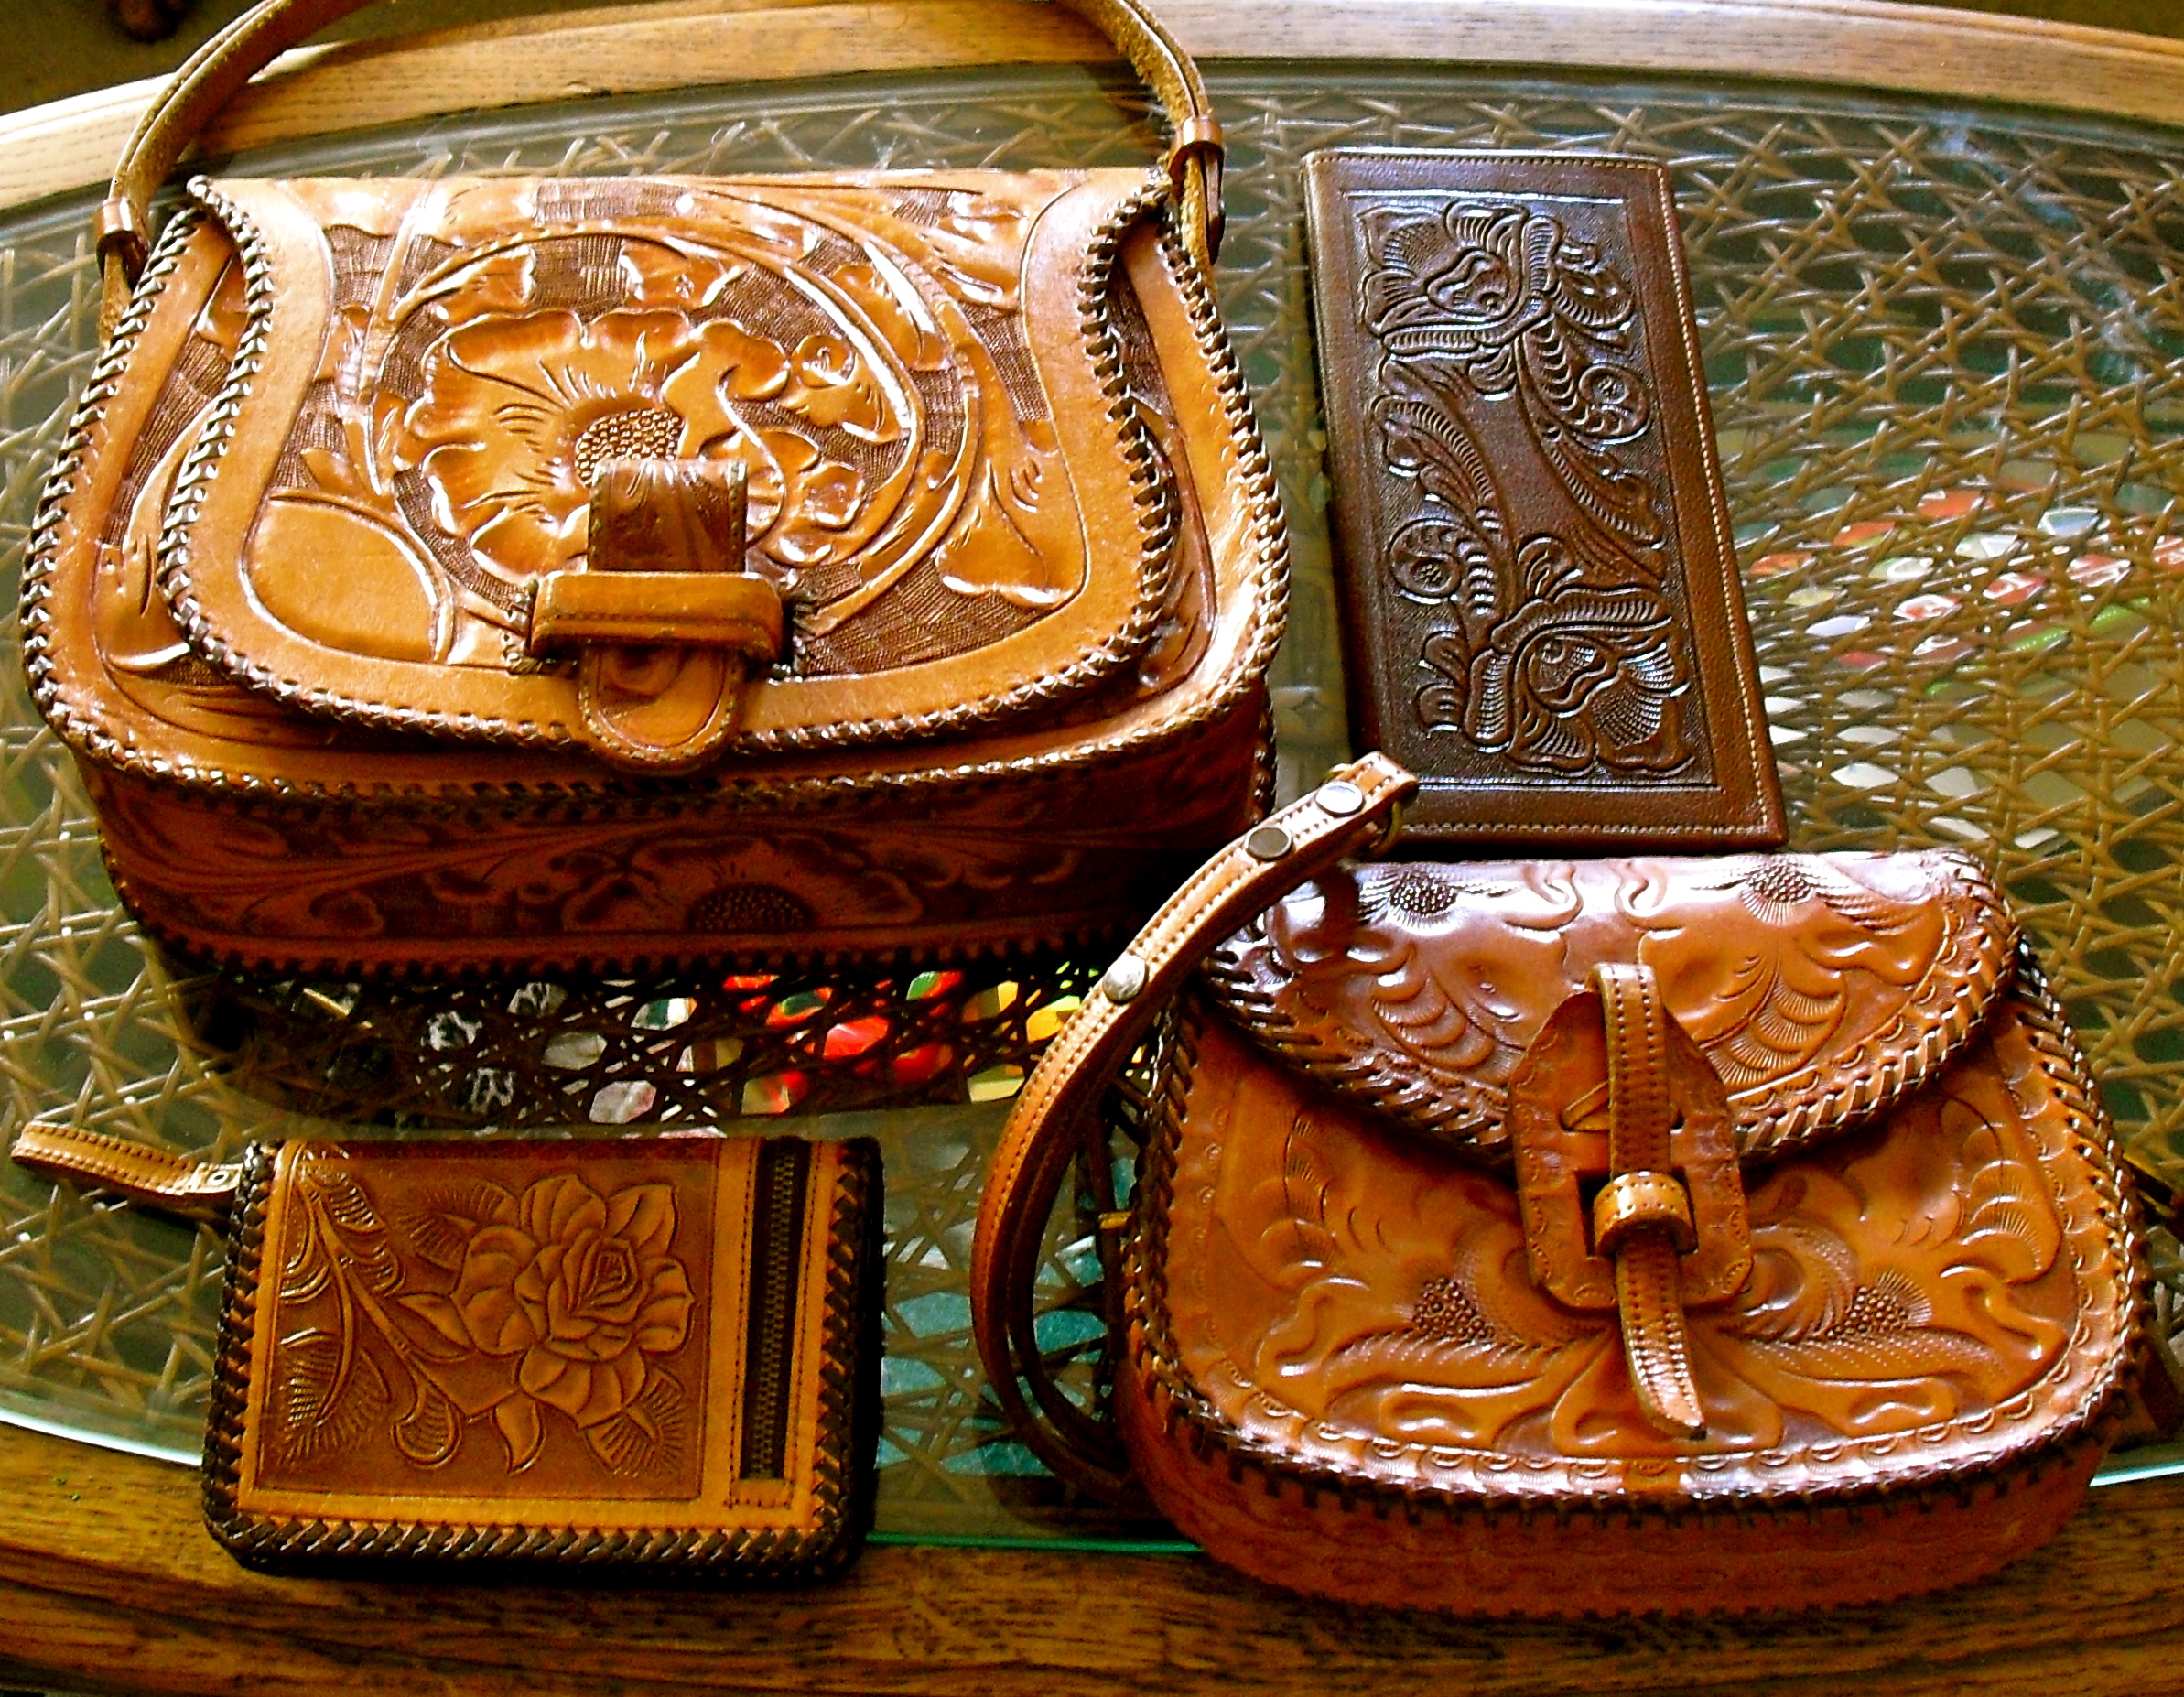 Collection of Tooled Leather Vintage Handbags   Wallets From Lady Violette  de Courcy s Personal Collection 640dac39de